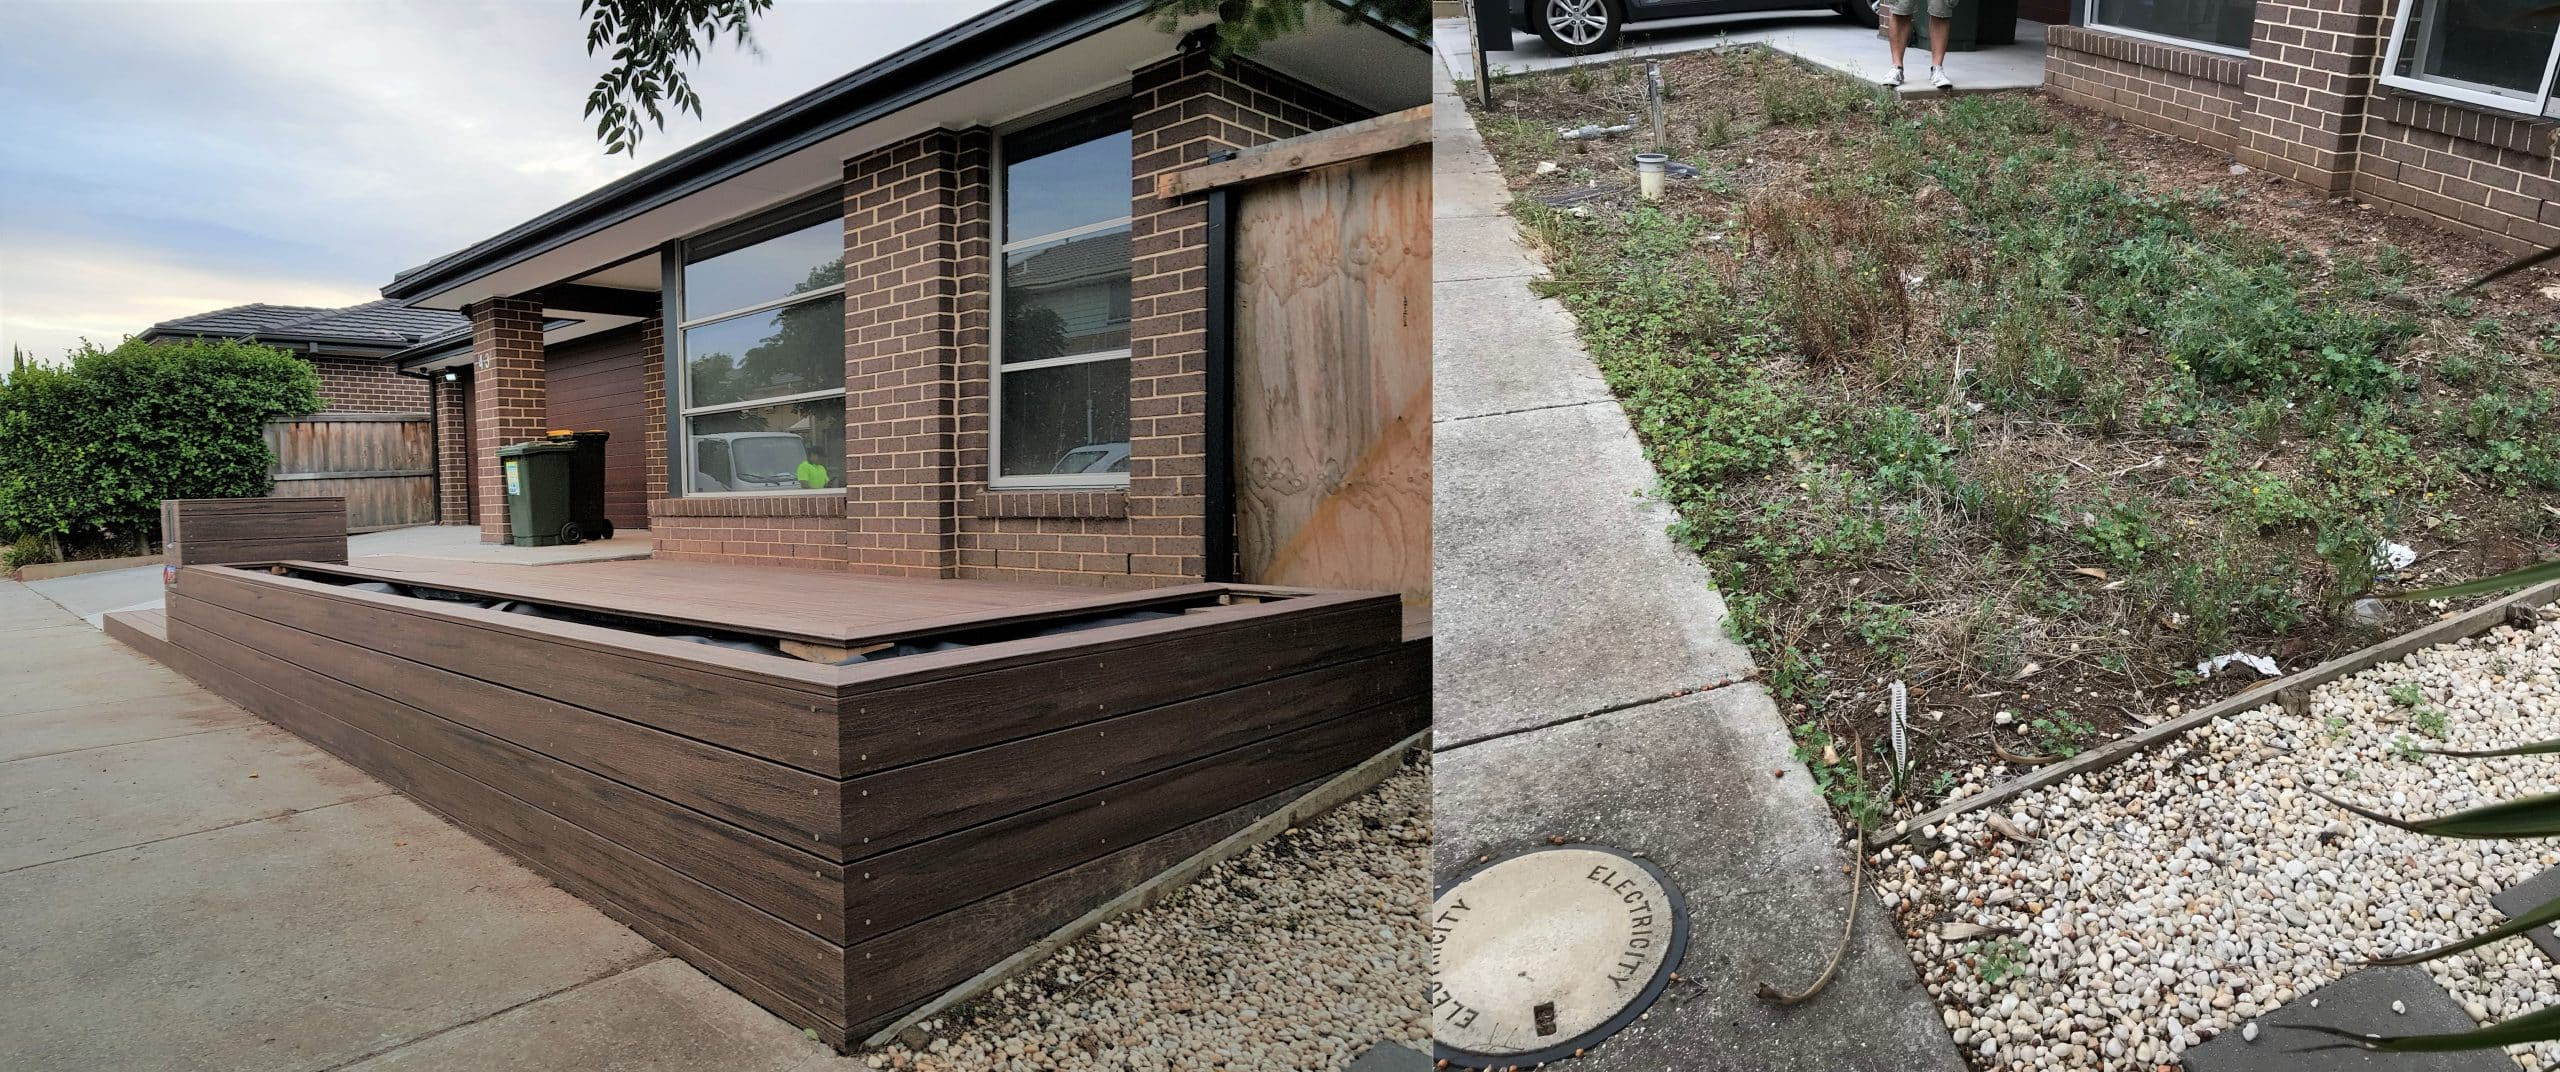 Front Before and After Modwood Garden Box